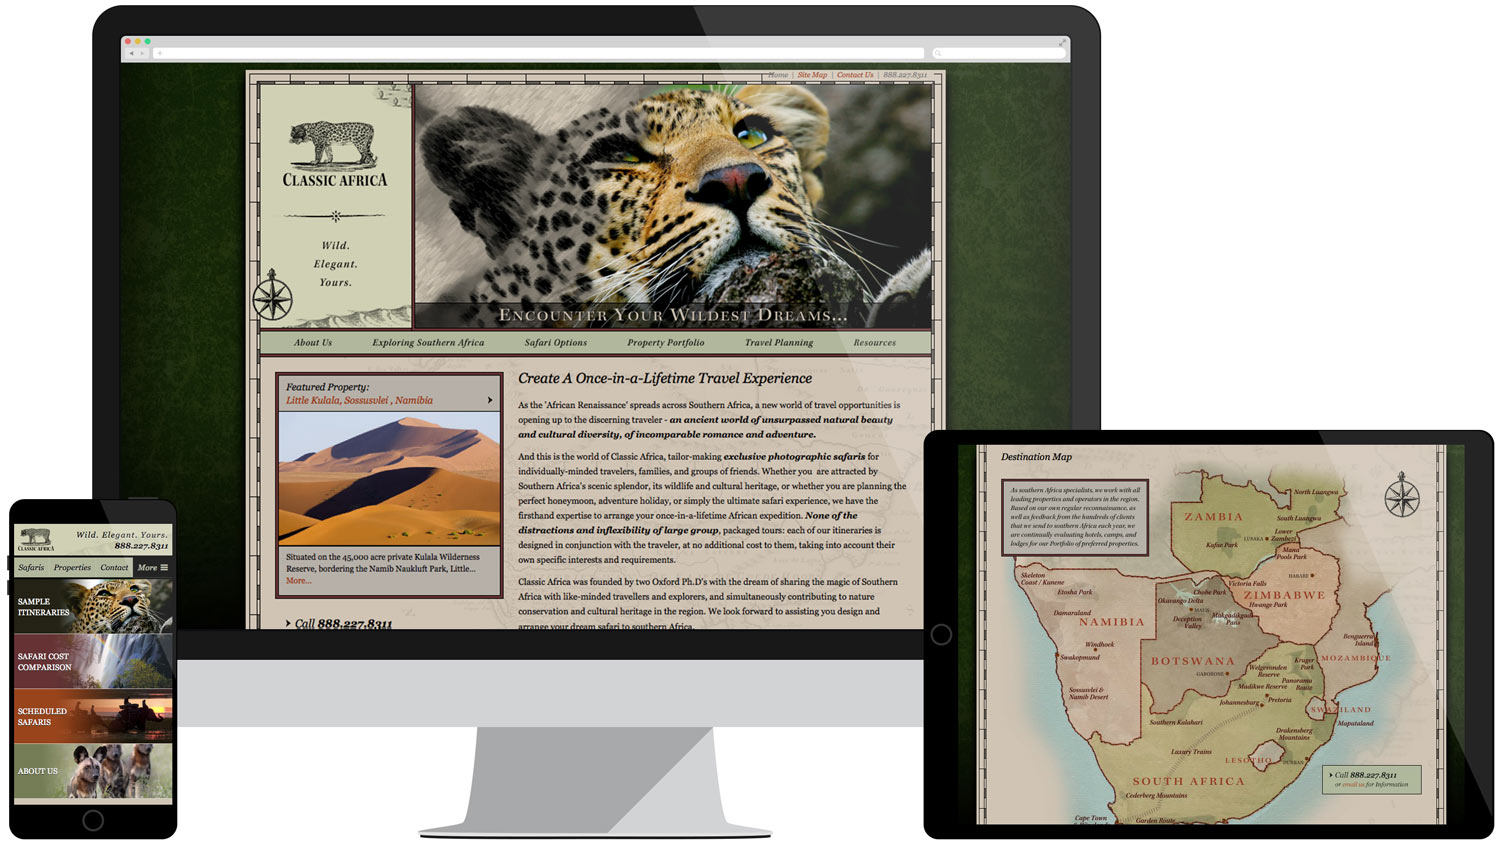 Web design for Classic Africa